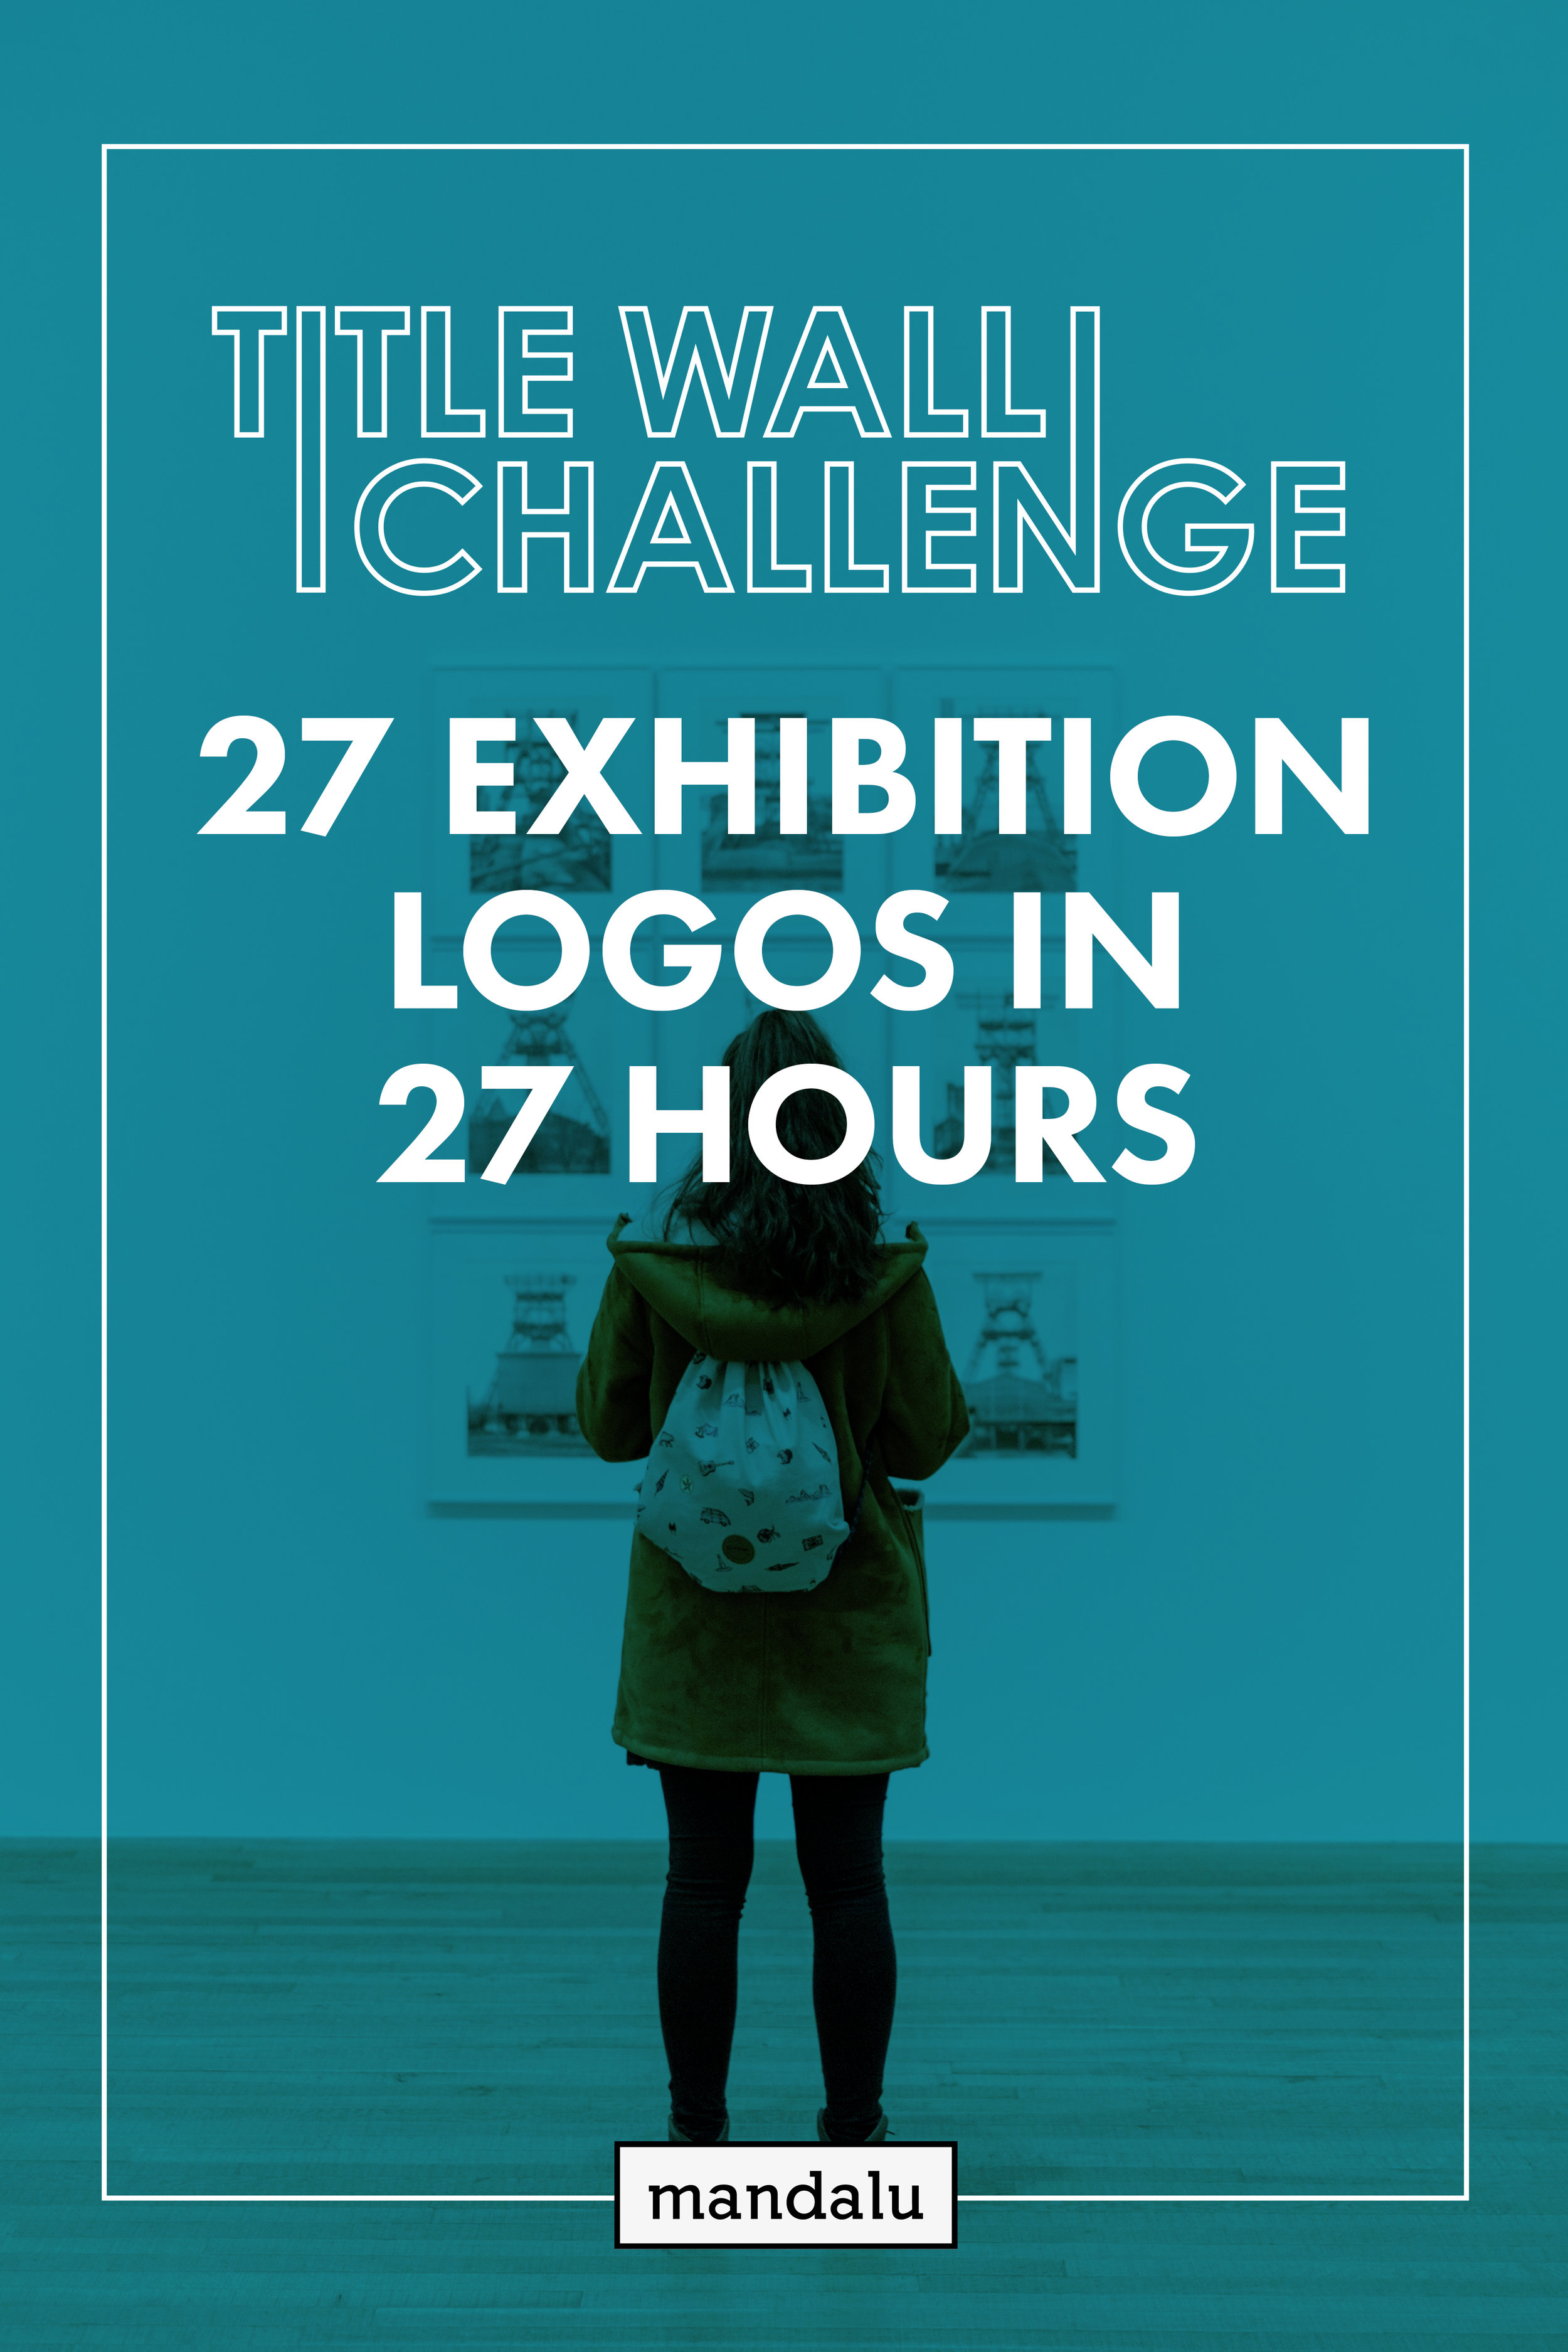 Title-Wall-Challenge_Exhibition-Logos_VBanner-3.jpg